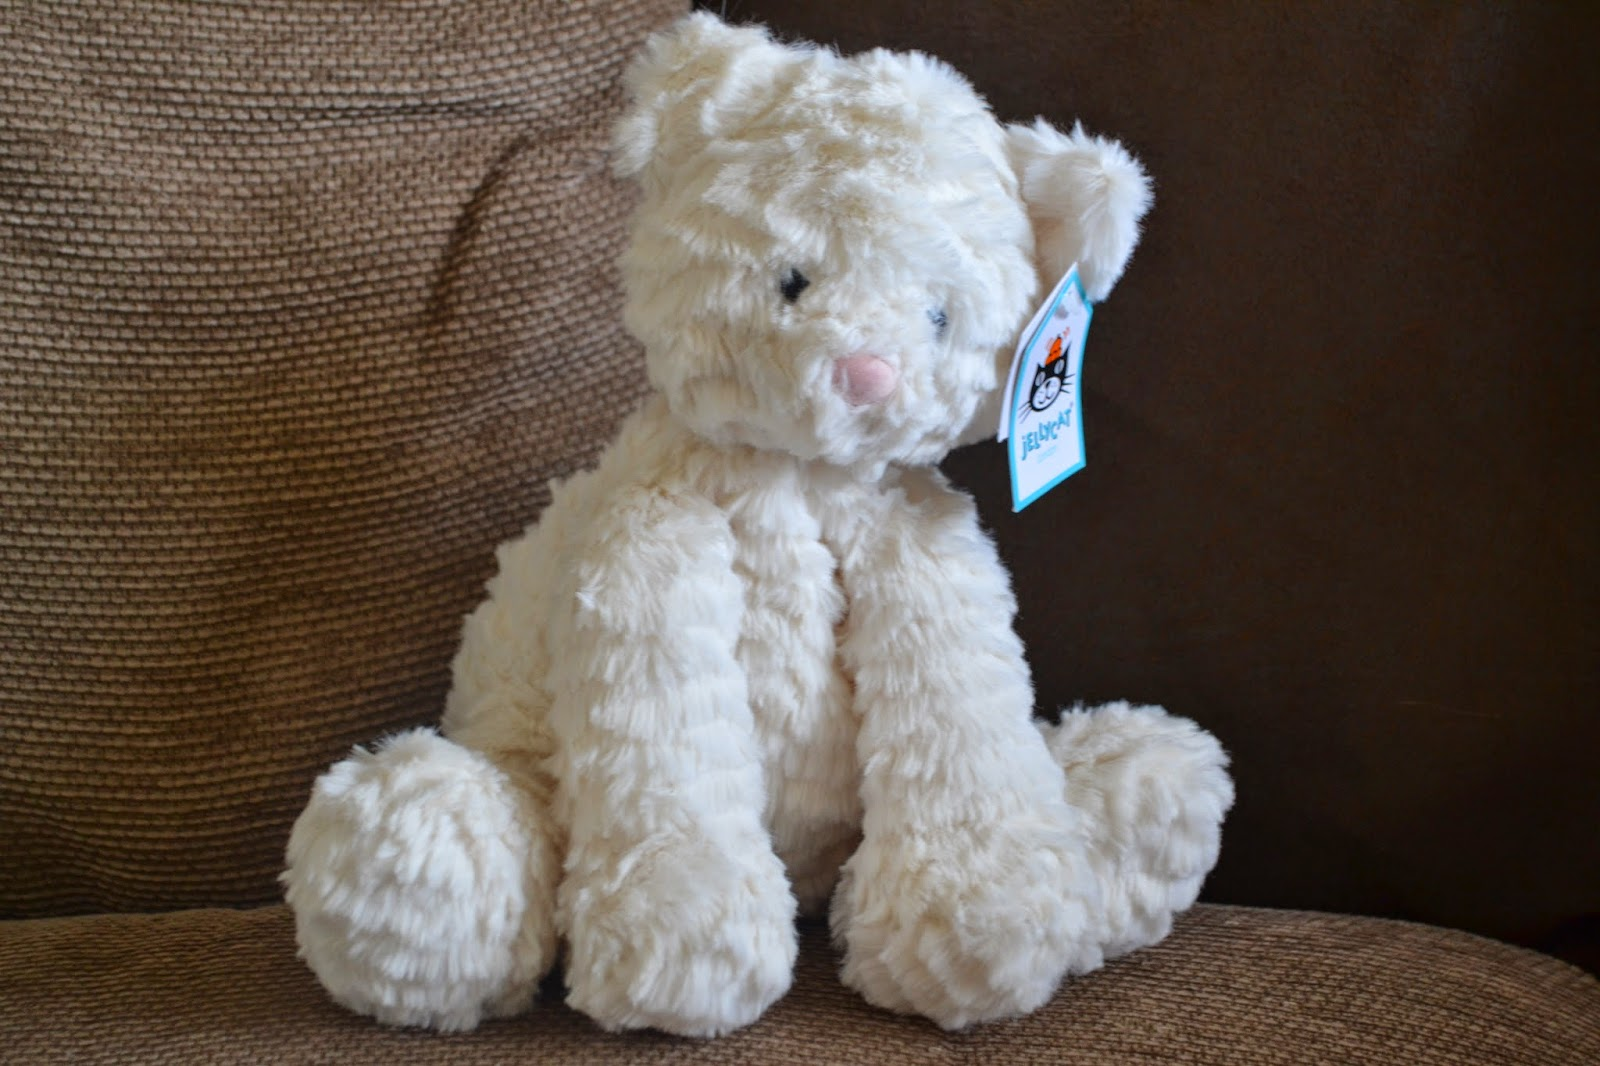 Teddy Bears - Make a Custom Teddy Bear - Build-A-Bear